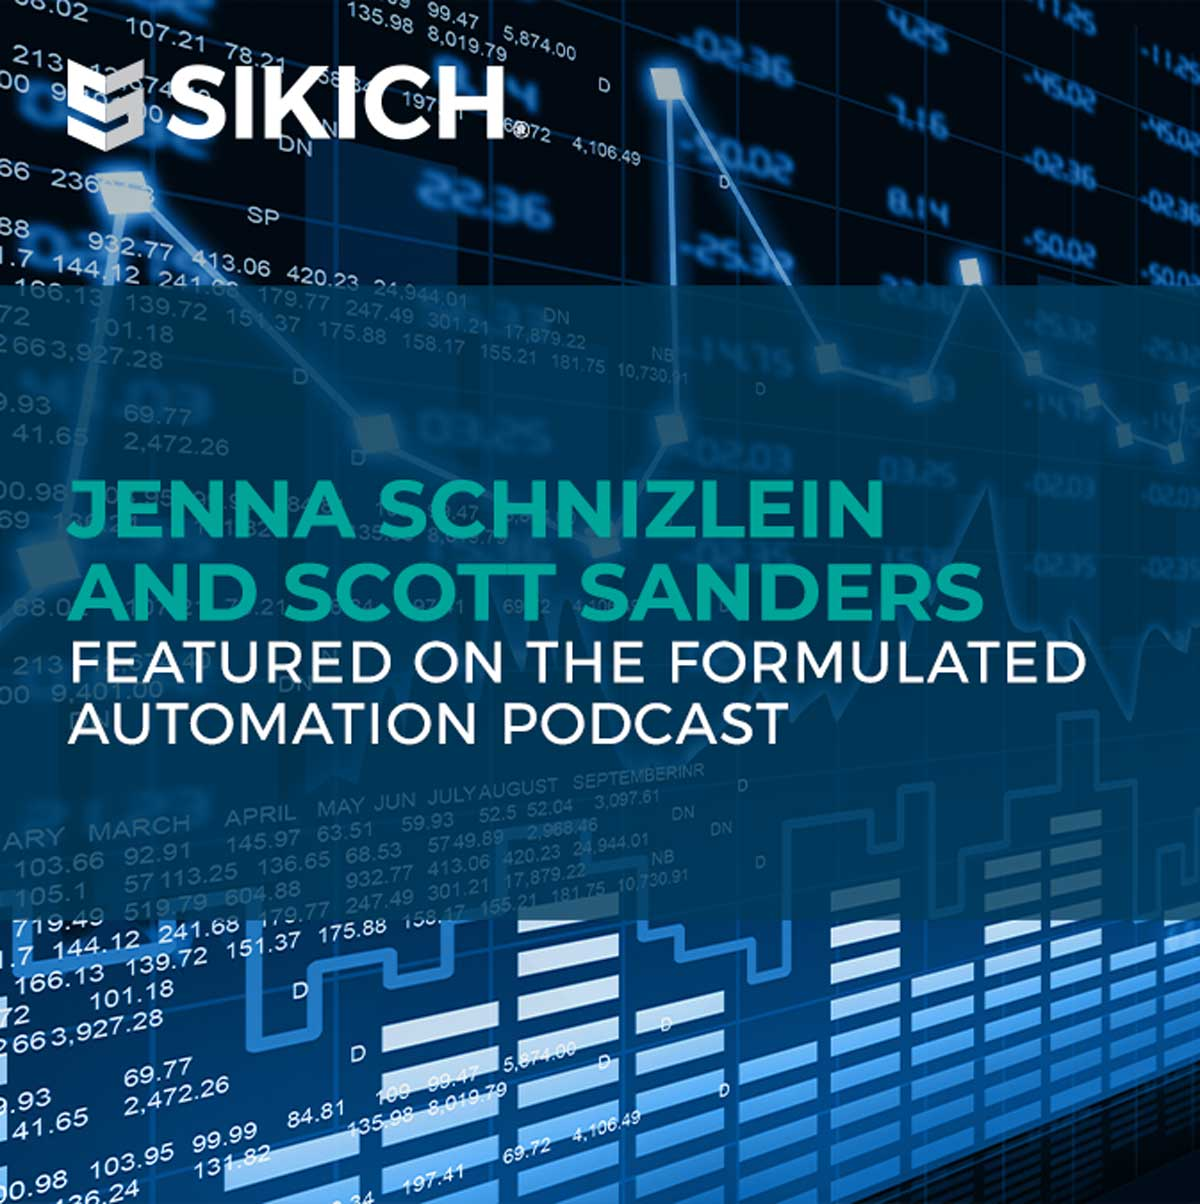 Formulated-Automation-Podcast